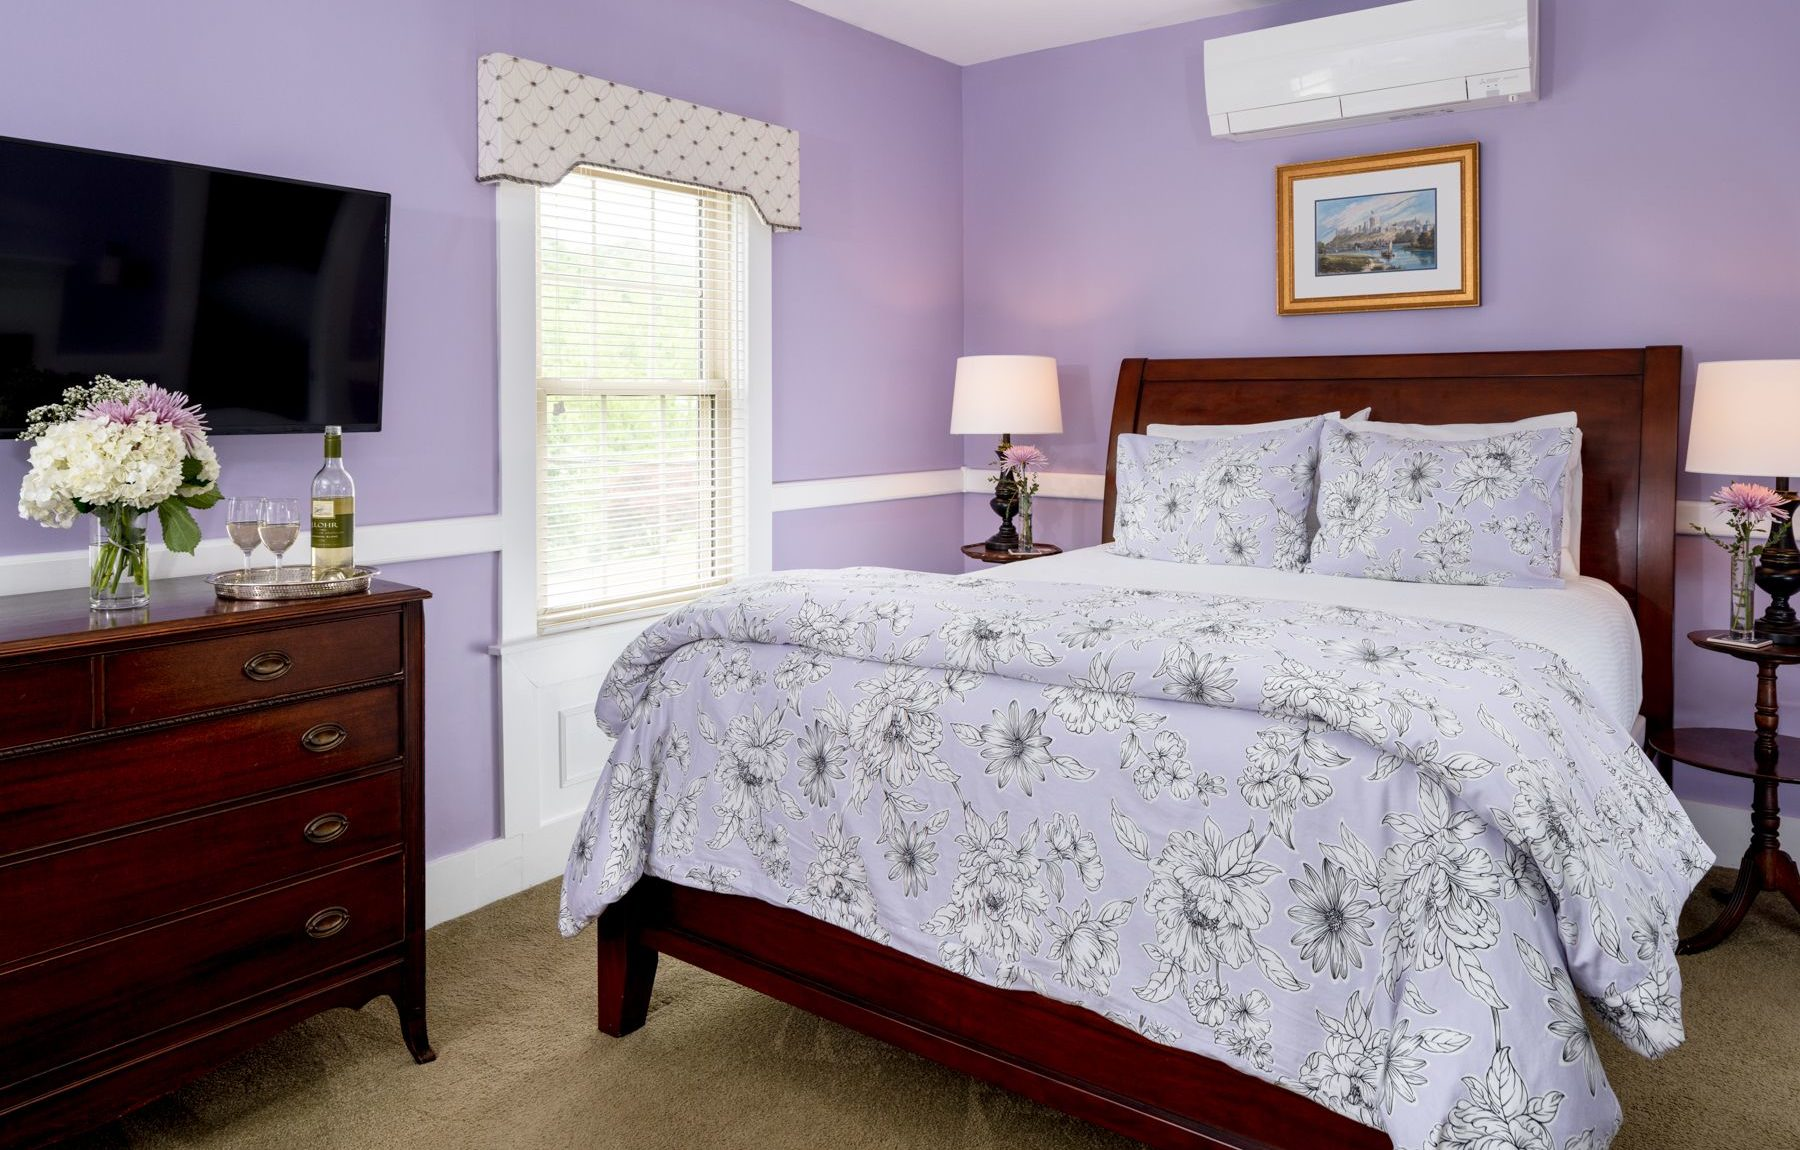 Queen bed in a spacious room with lilac walls